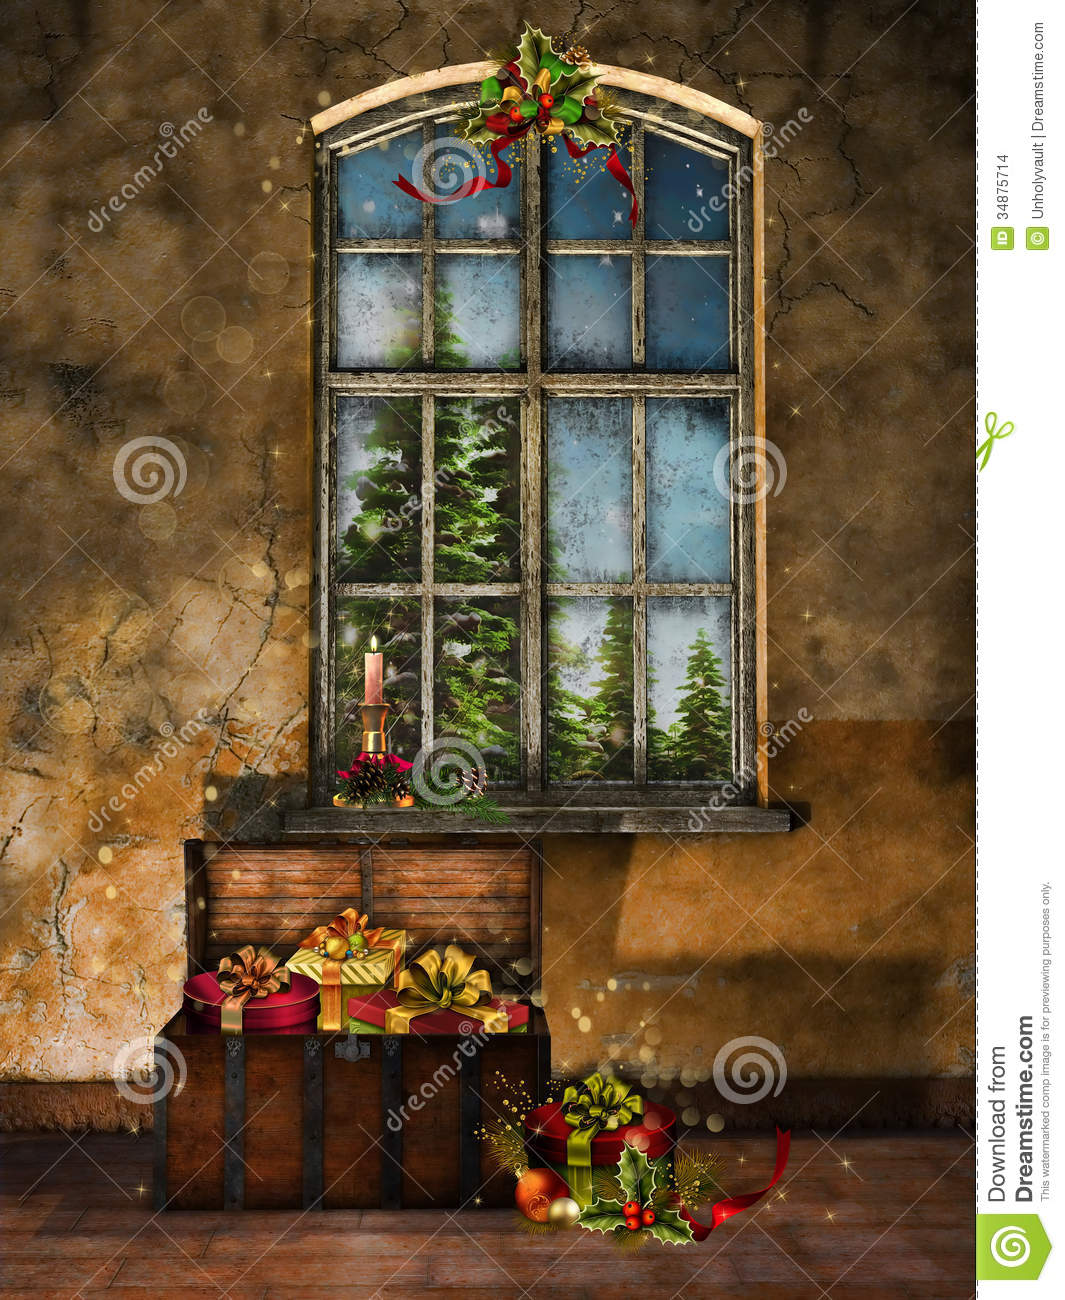 Old Room With Christmas Decorations Stock Images